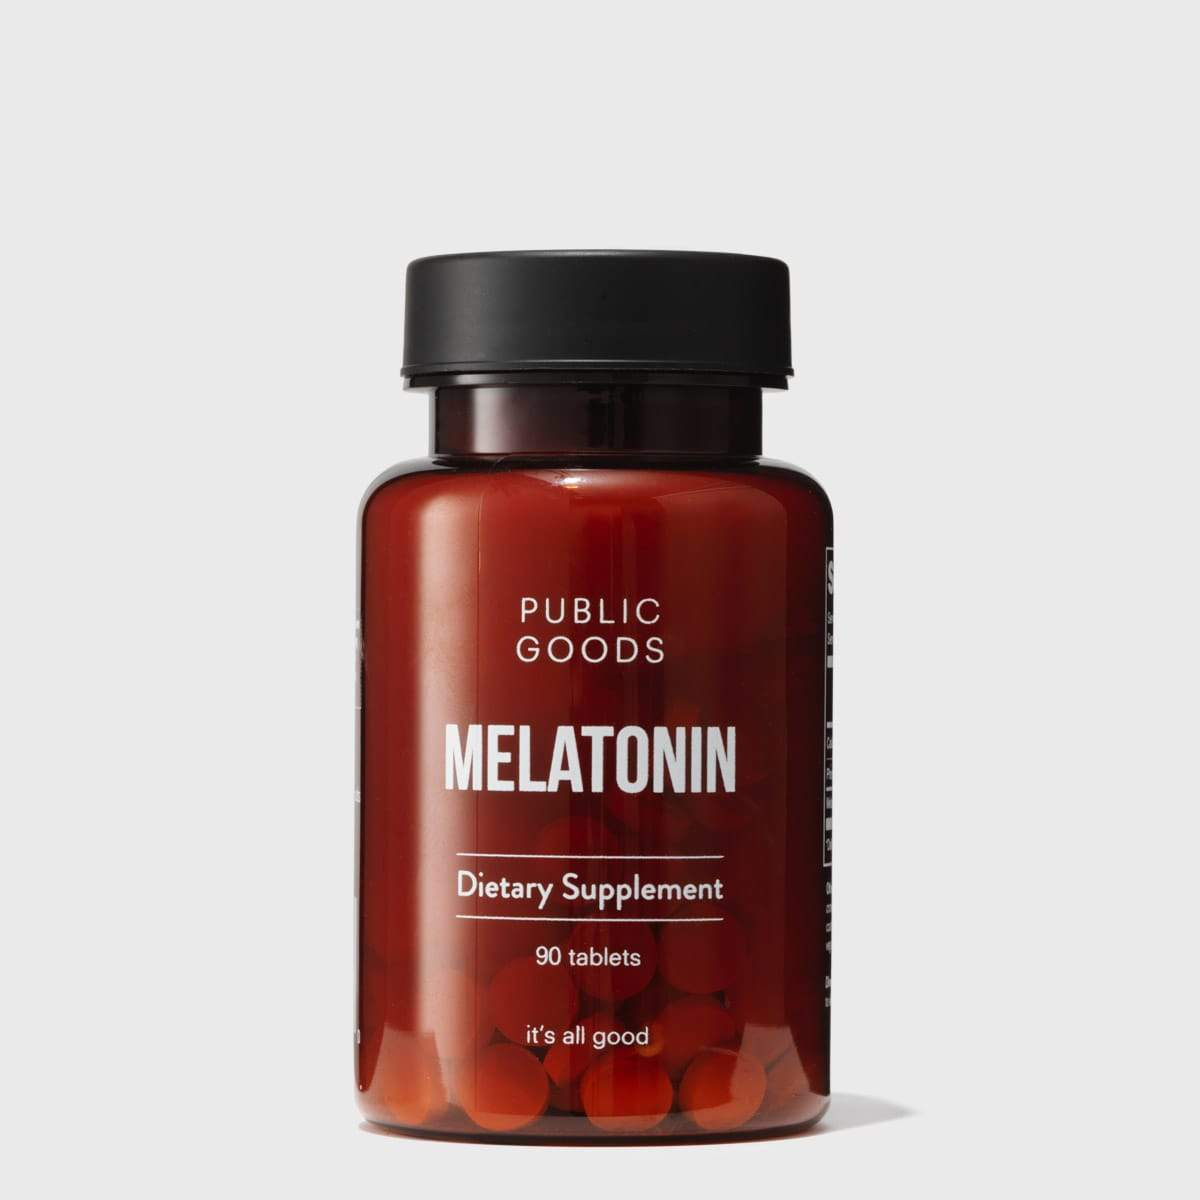 bottle of public goods melatonin supplement